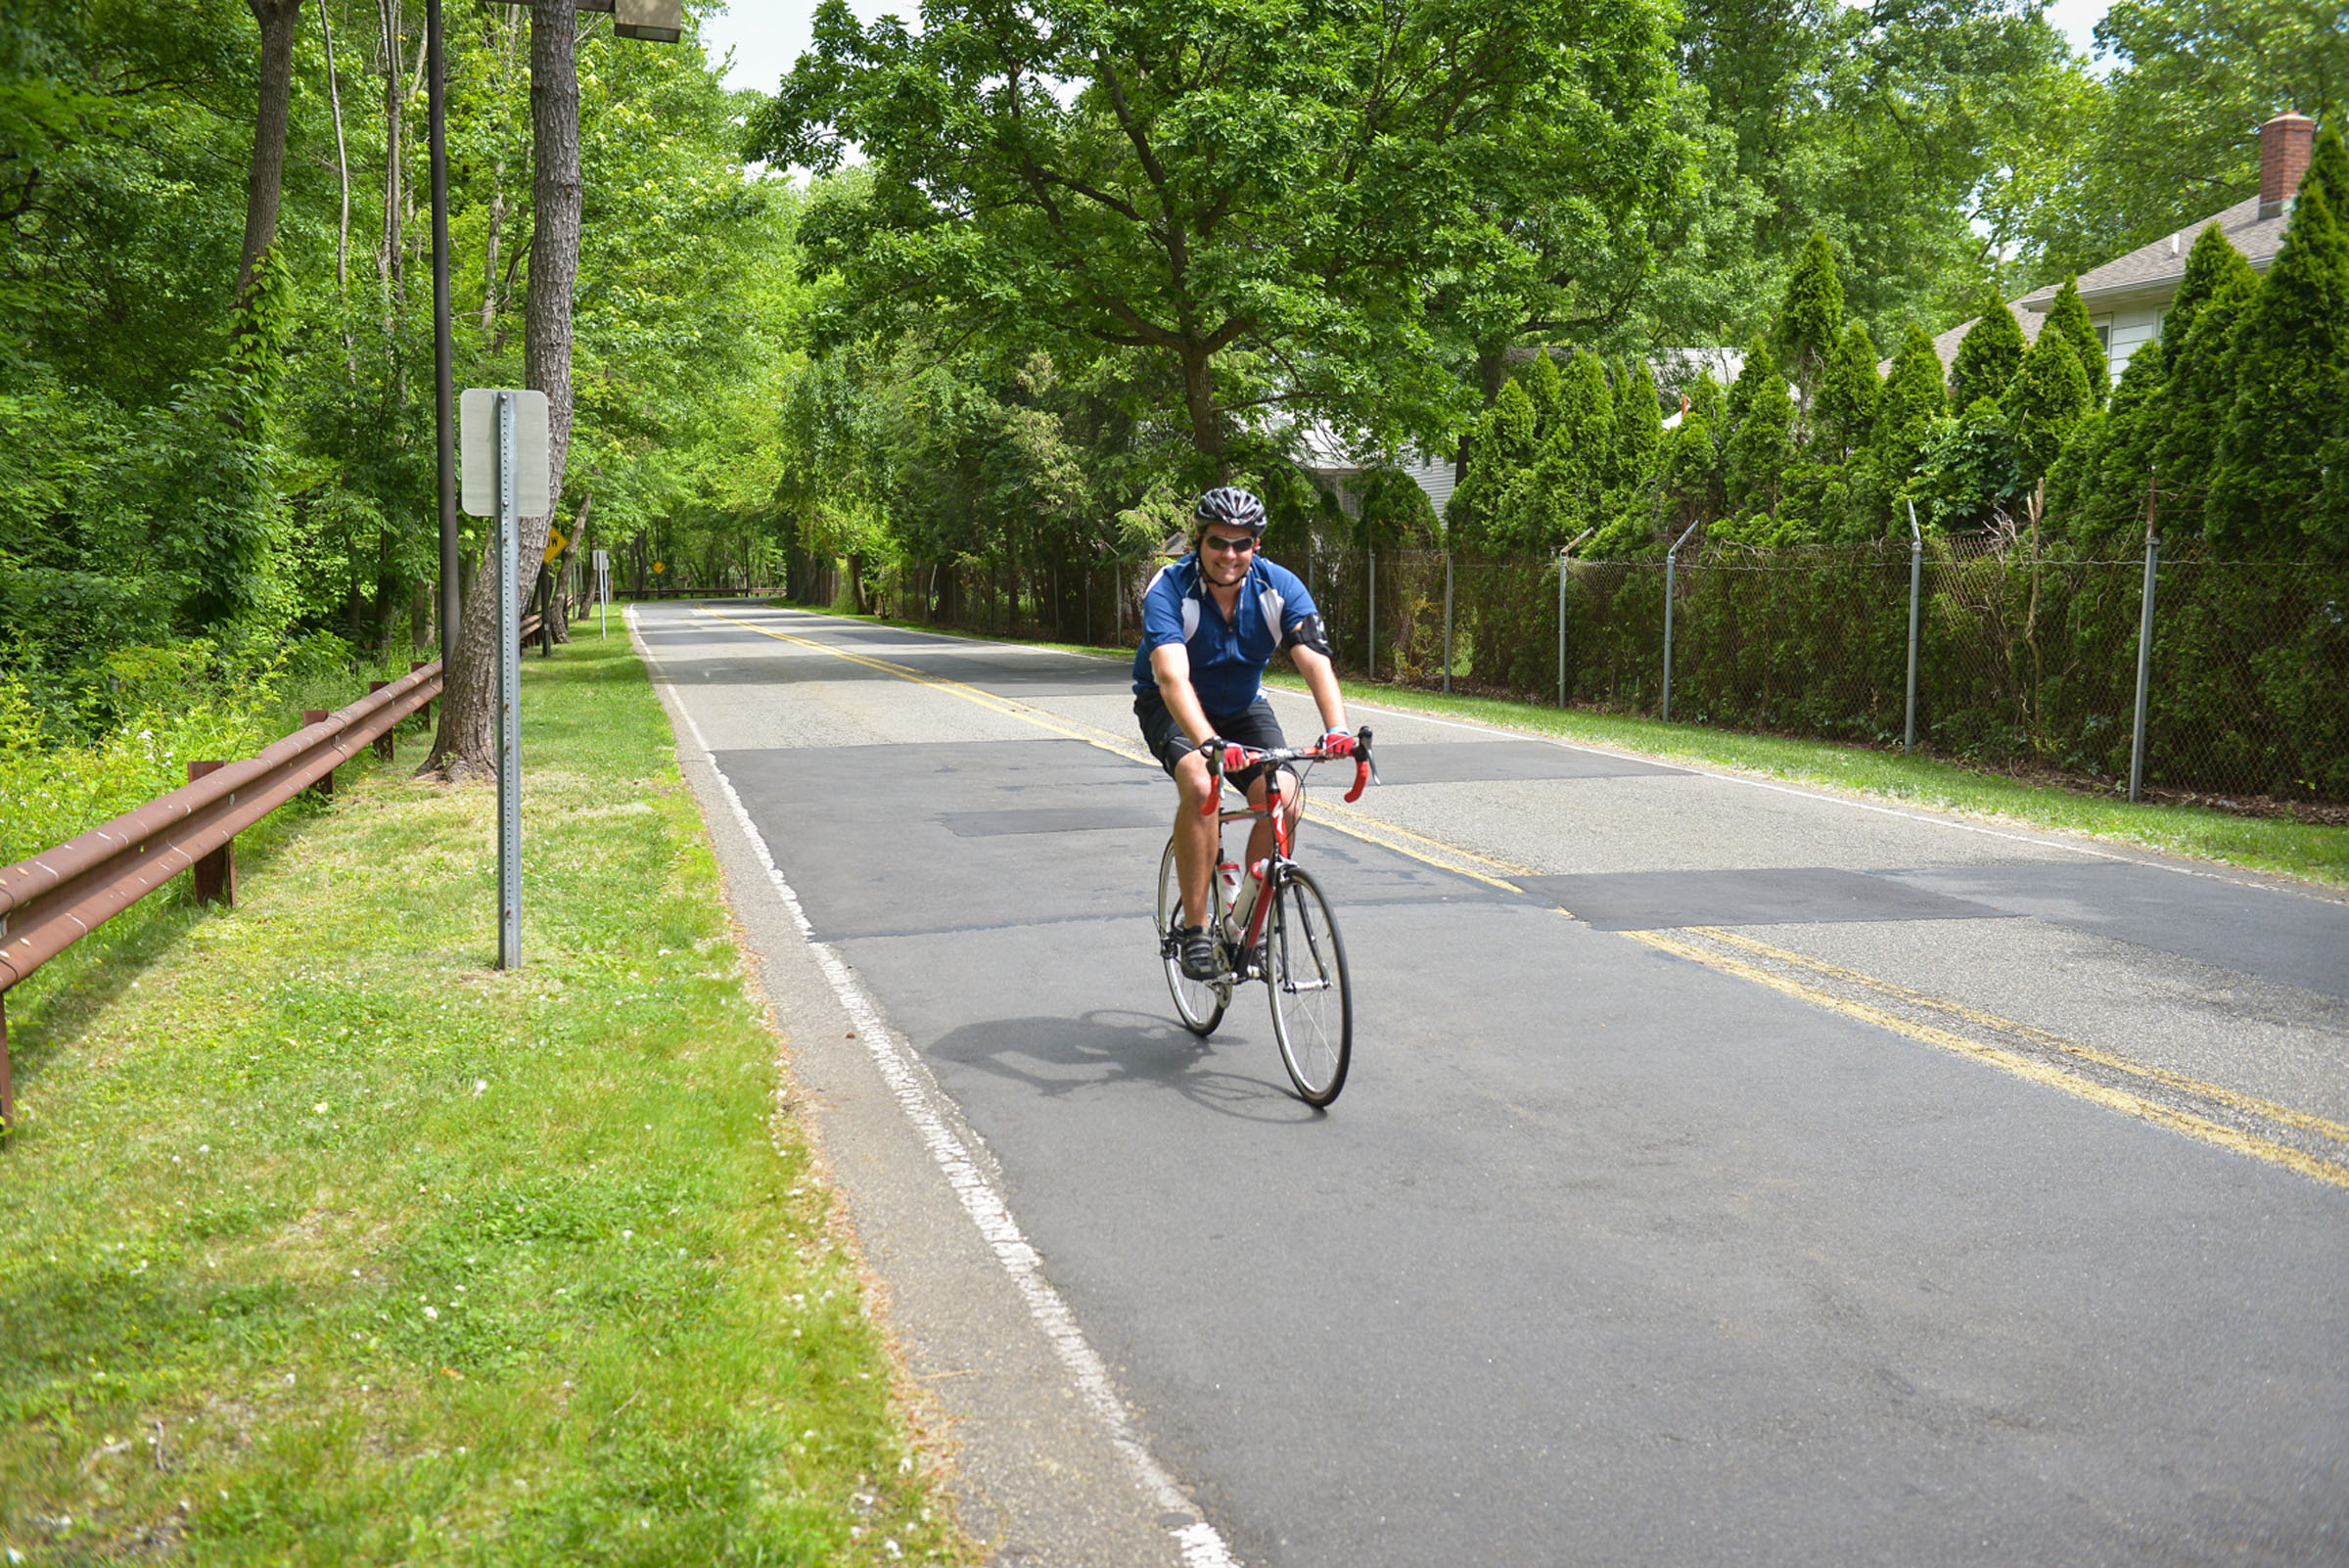 2017-06-04 GTD4A Charity Bike Ride - BCC - Paramus NJ-2369.jpg